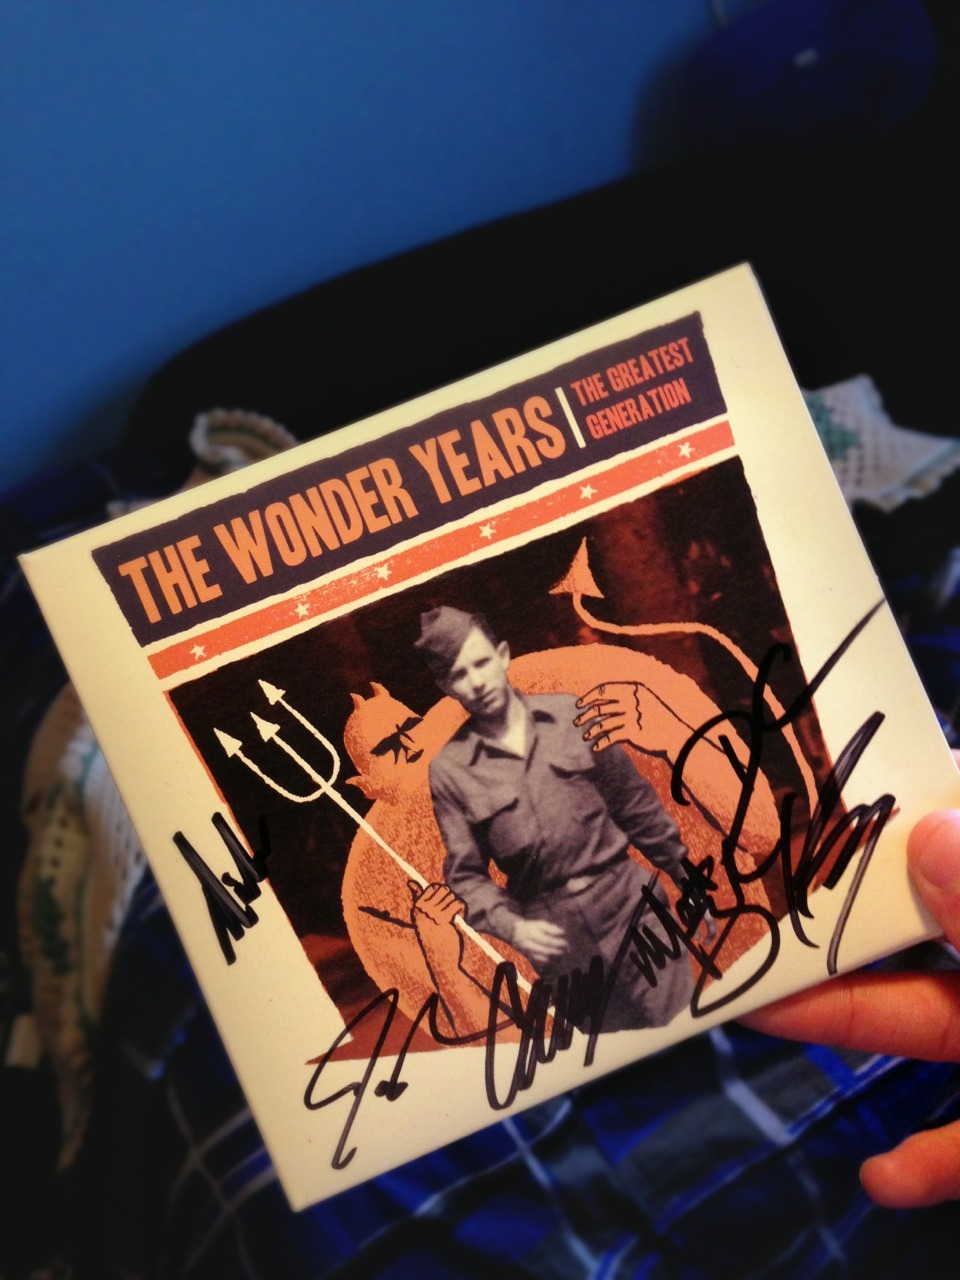 the-b0y-who-could-fly:  i just met the wonder years and got this signed by them kajshbdfkaofl